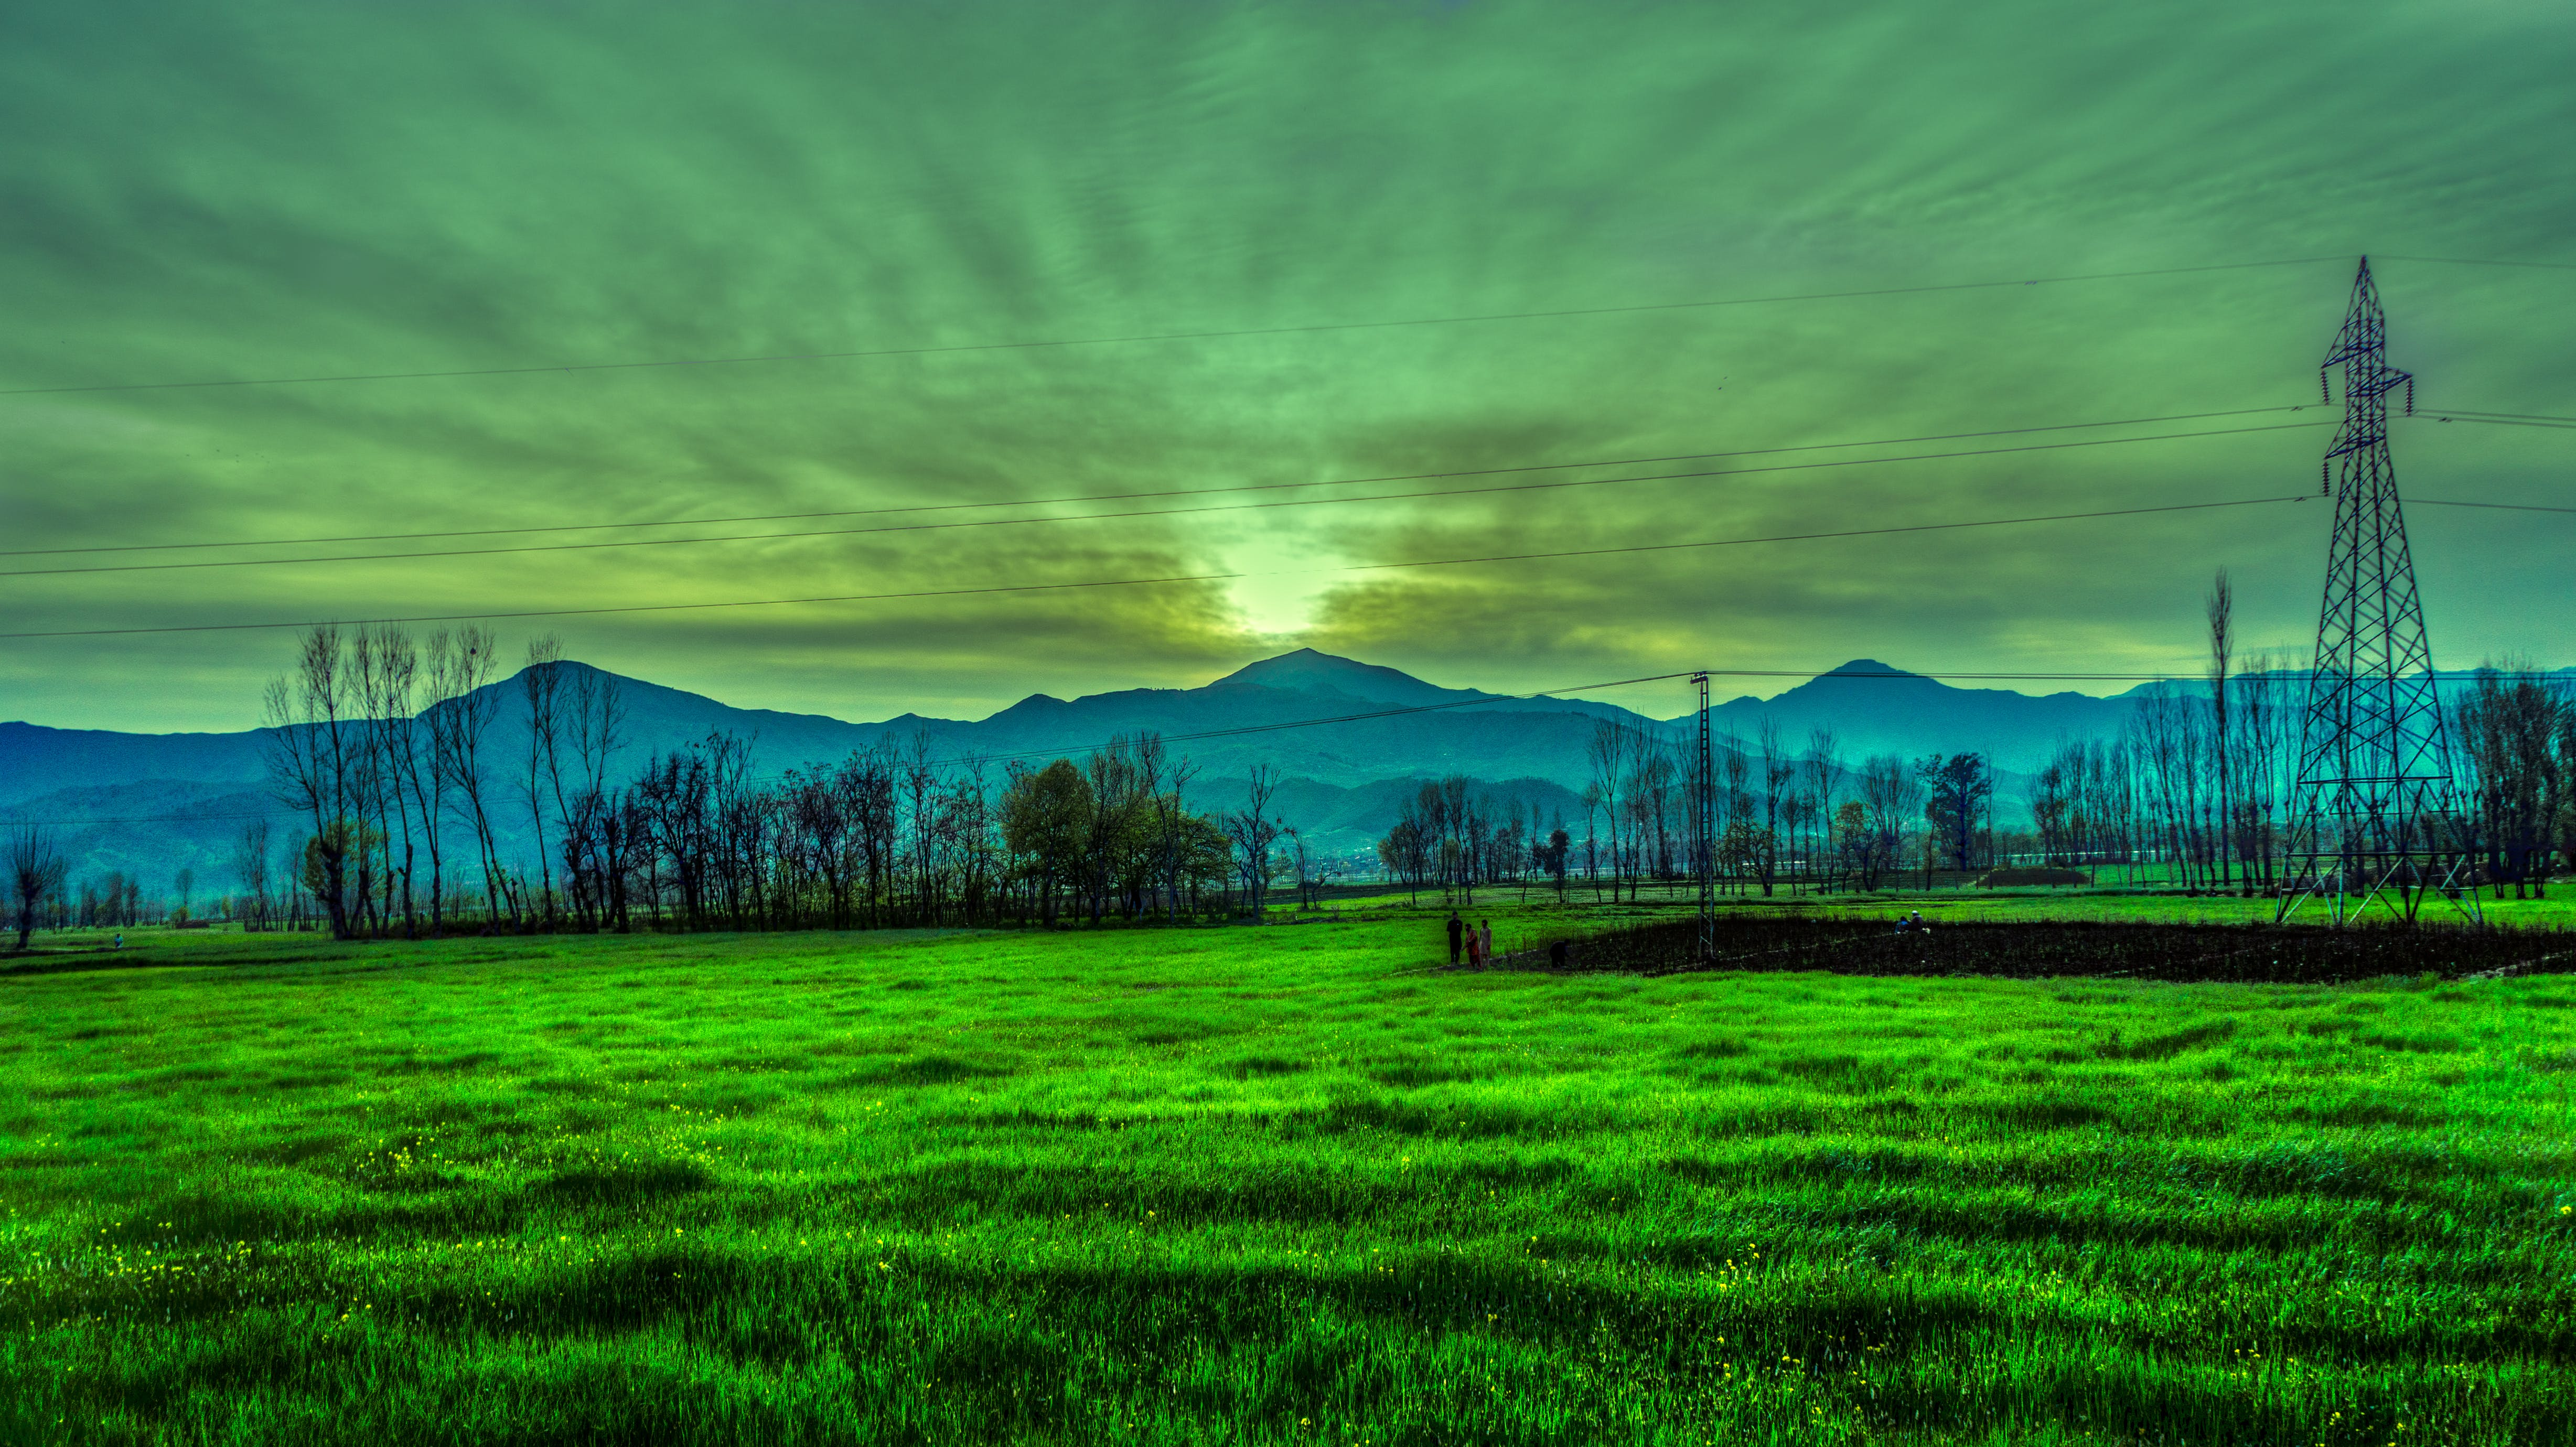 Silhouette Photography of Mountain Near Green Grass